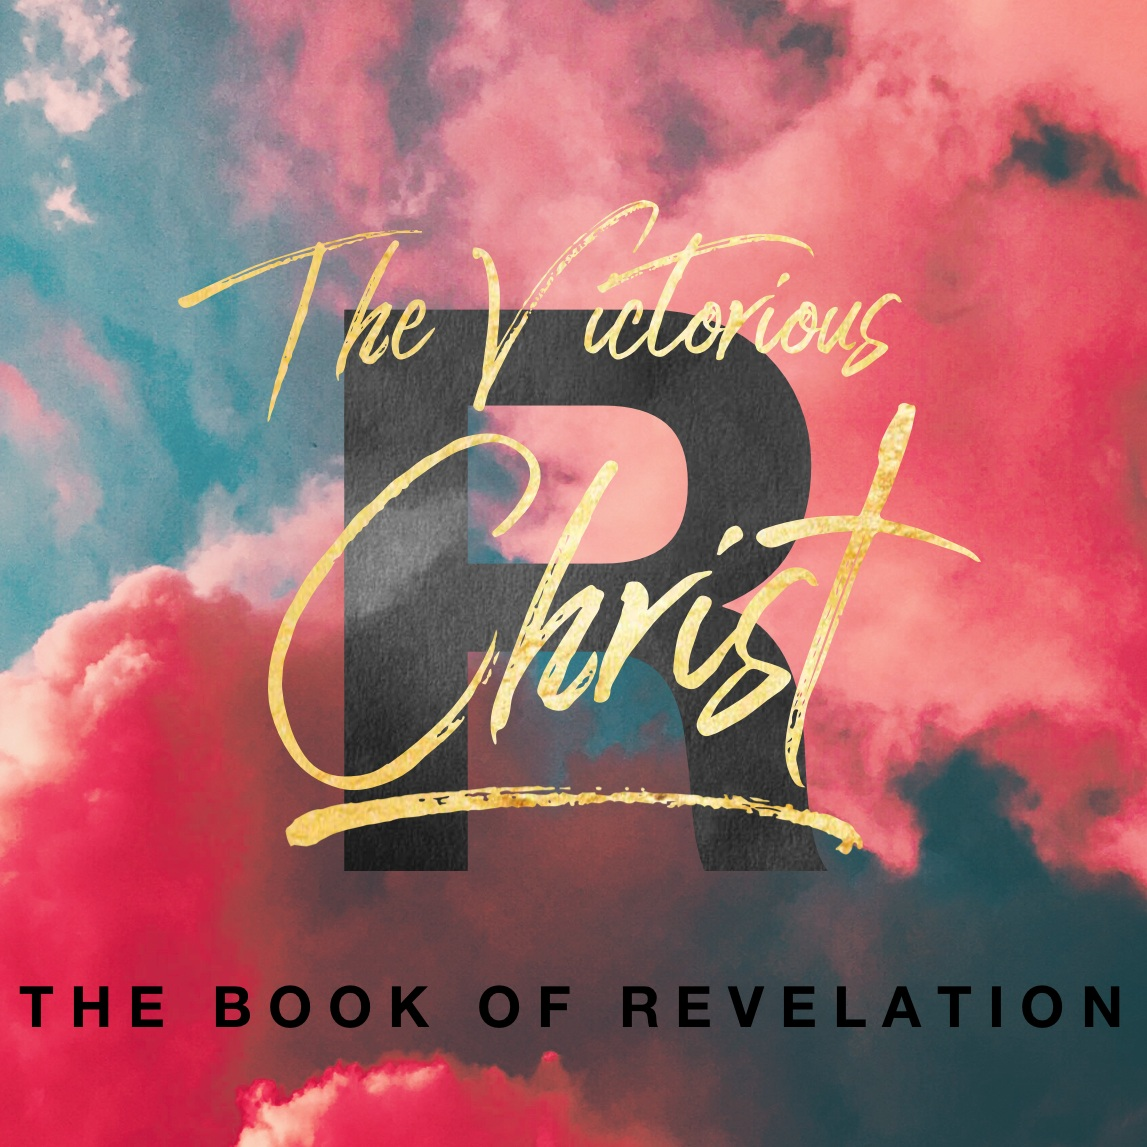 """Upcoming Sermons - Aug 4- """"Chasing Death""""- 9:1-12Aug 11- """"The Demonic Cavalry""""- 9:13-21Aug 18- """"Sweet & Sour""""- 10:1-11Aug 25- """"When Mankind Deifies Evil""""- 11:1-14"""